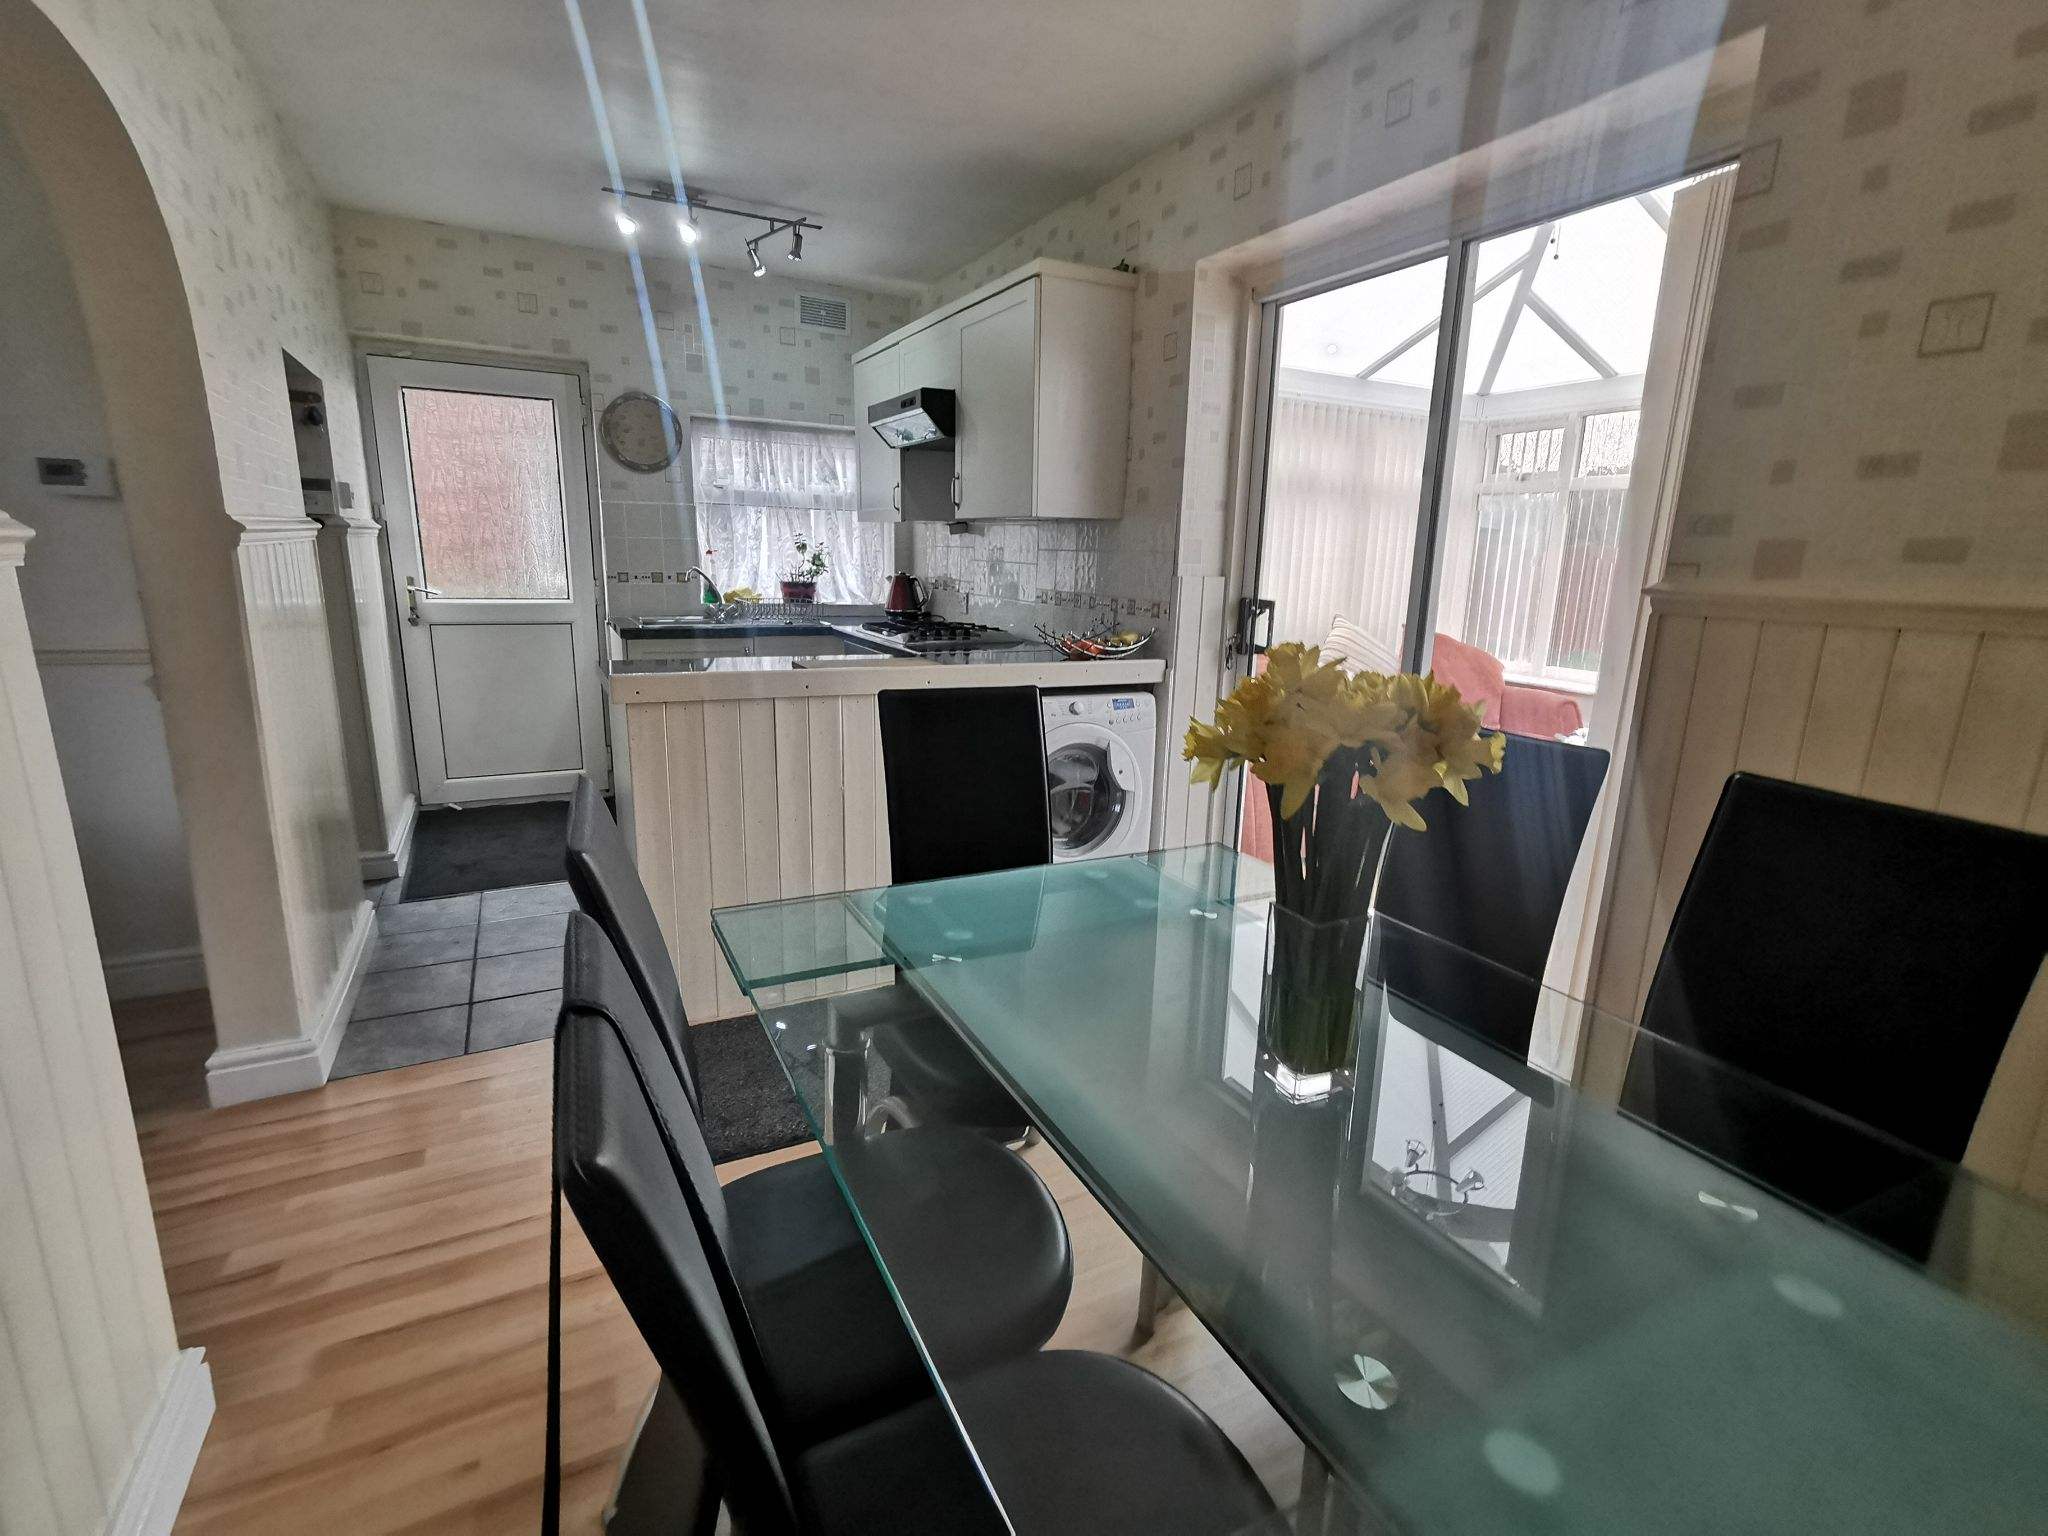 3 bedroom semi-detached house in Bradford - Photograph 6.